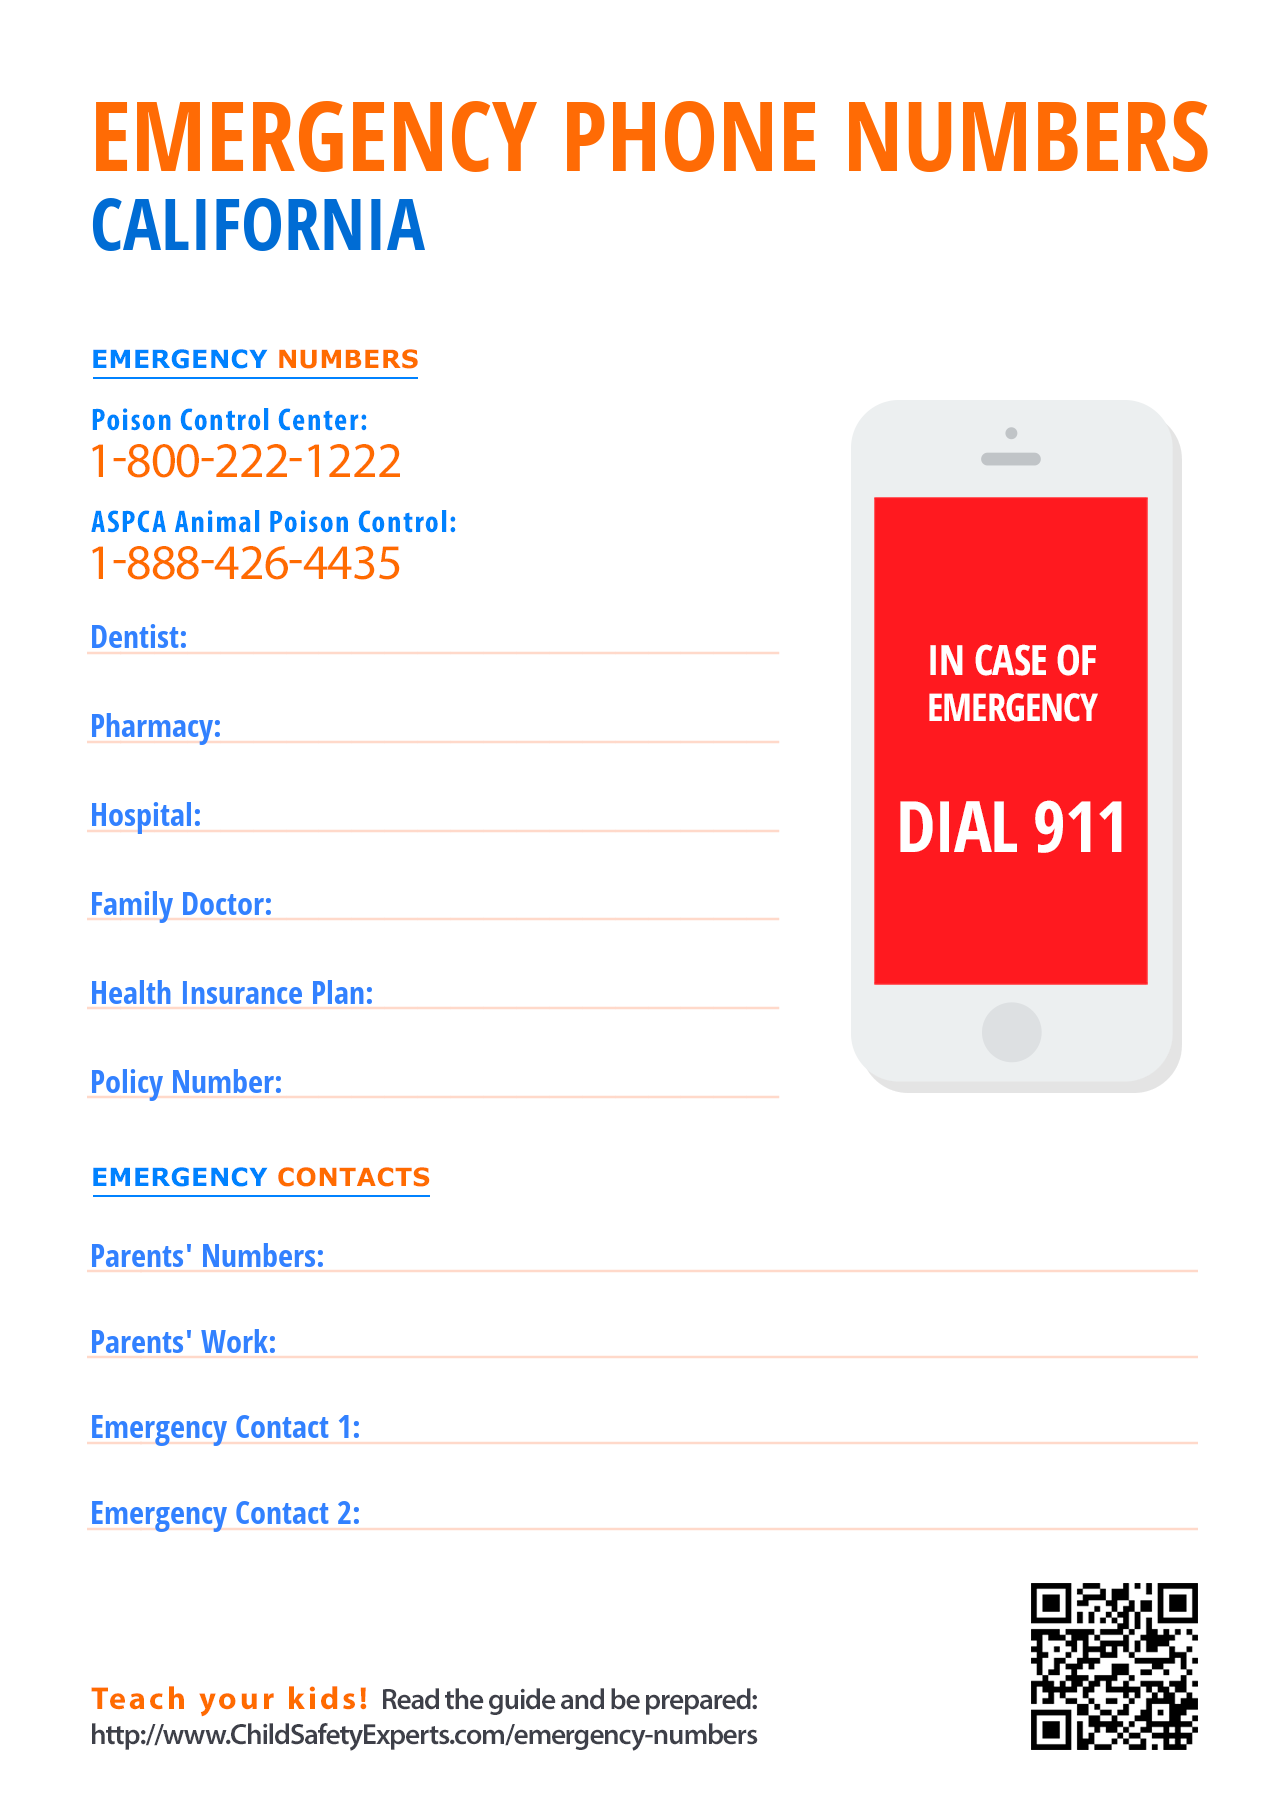 Important emergency phone numbers in California